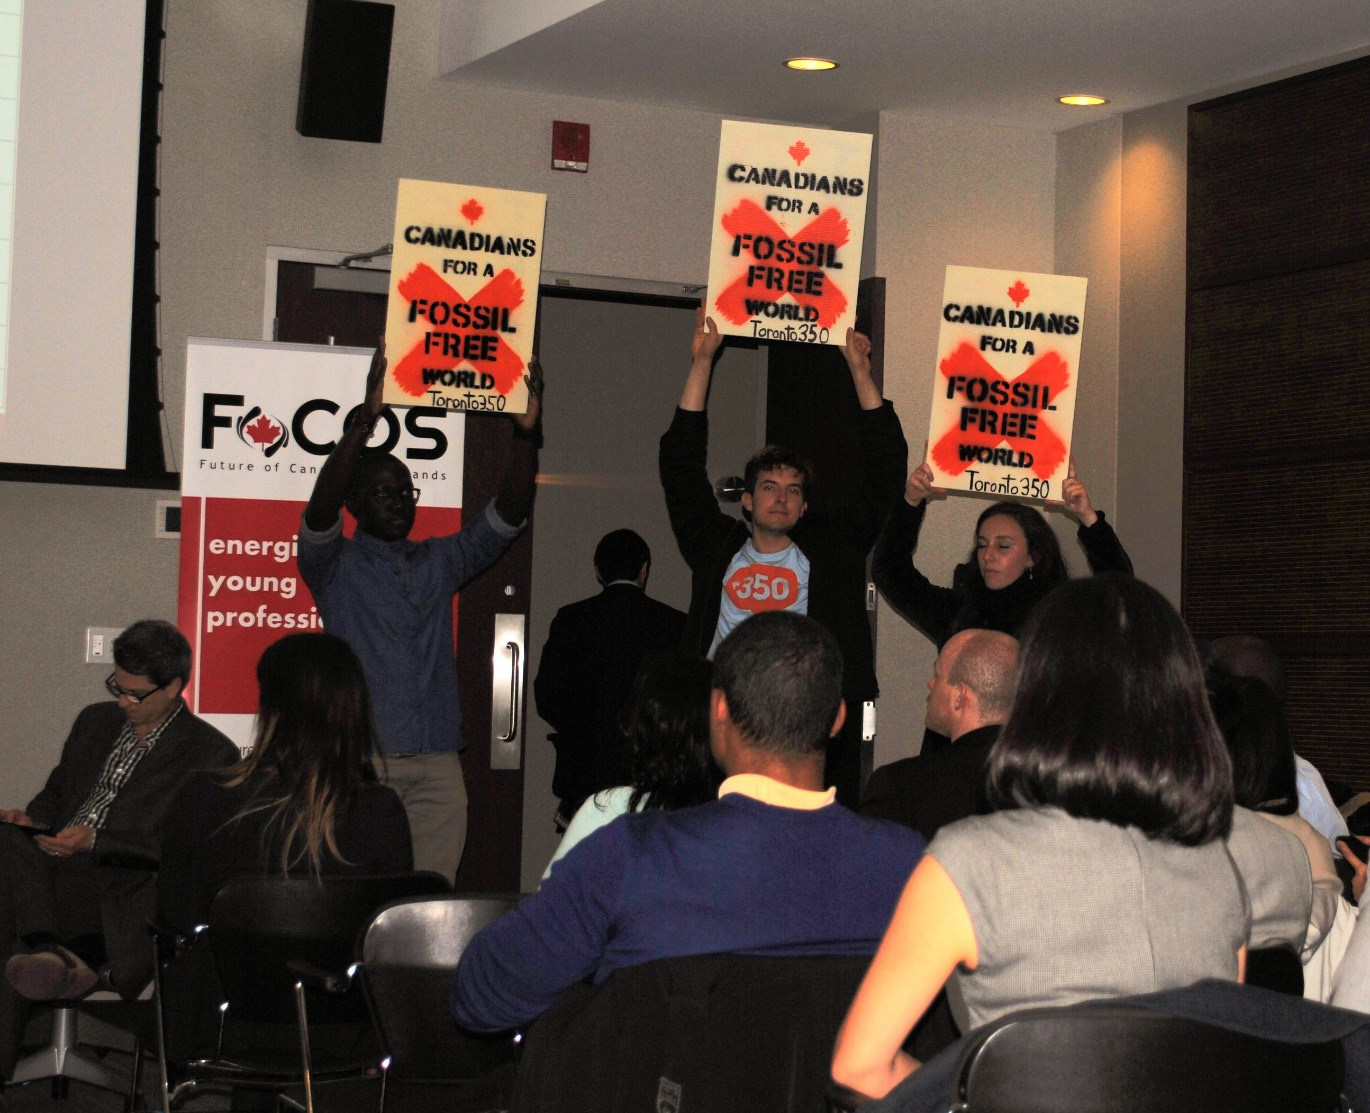 Members of Toronto350 hold up signs at so called sustainable tar sands discussion